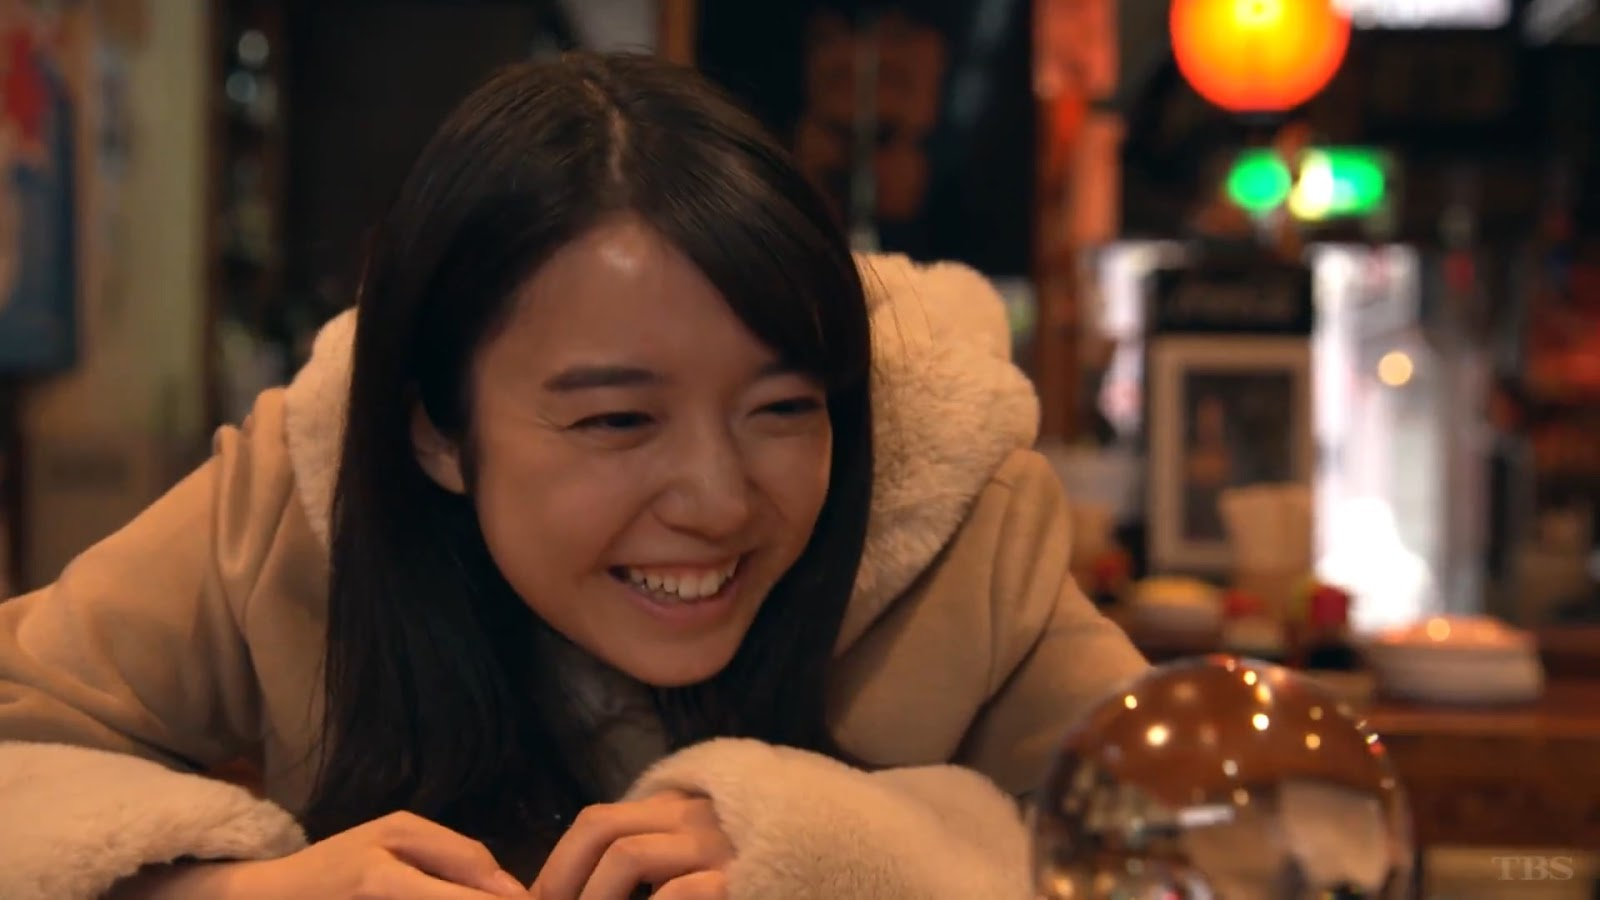 Madamada Koi Wa Tsuzuku Yo Dokomademo 01 Dramacool will always be the first to have the episode so please bookmark and add us on facebook for update!!! madamada koi wa tsuzuku yo dokomademo 01